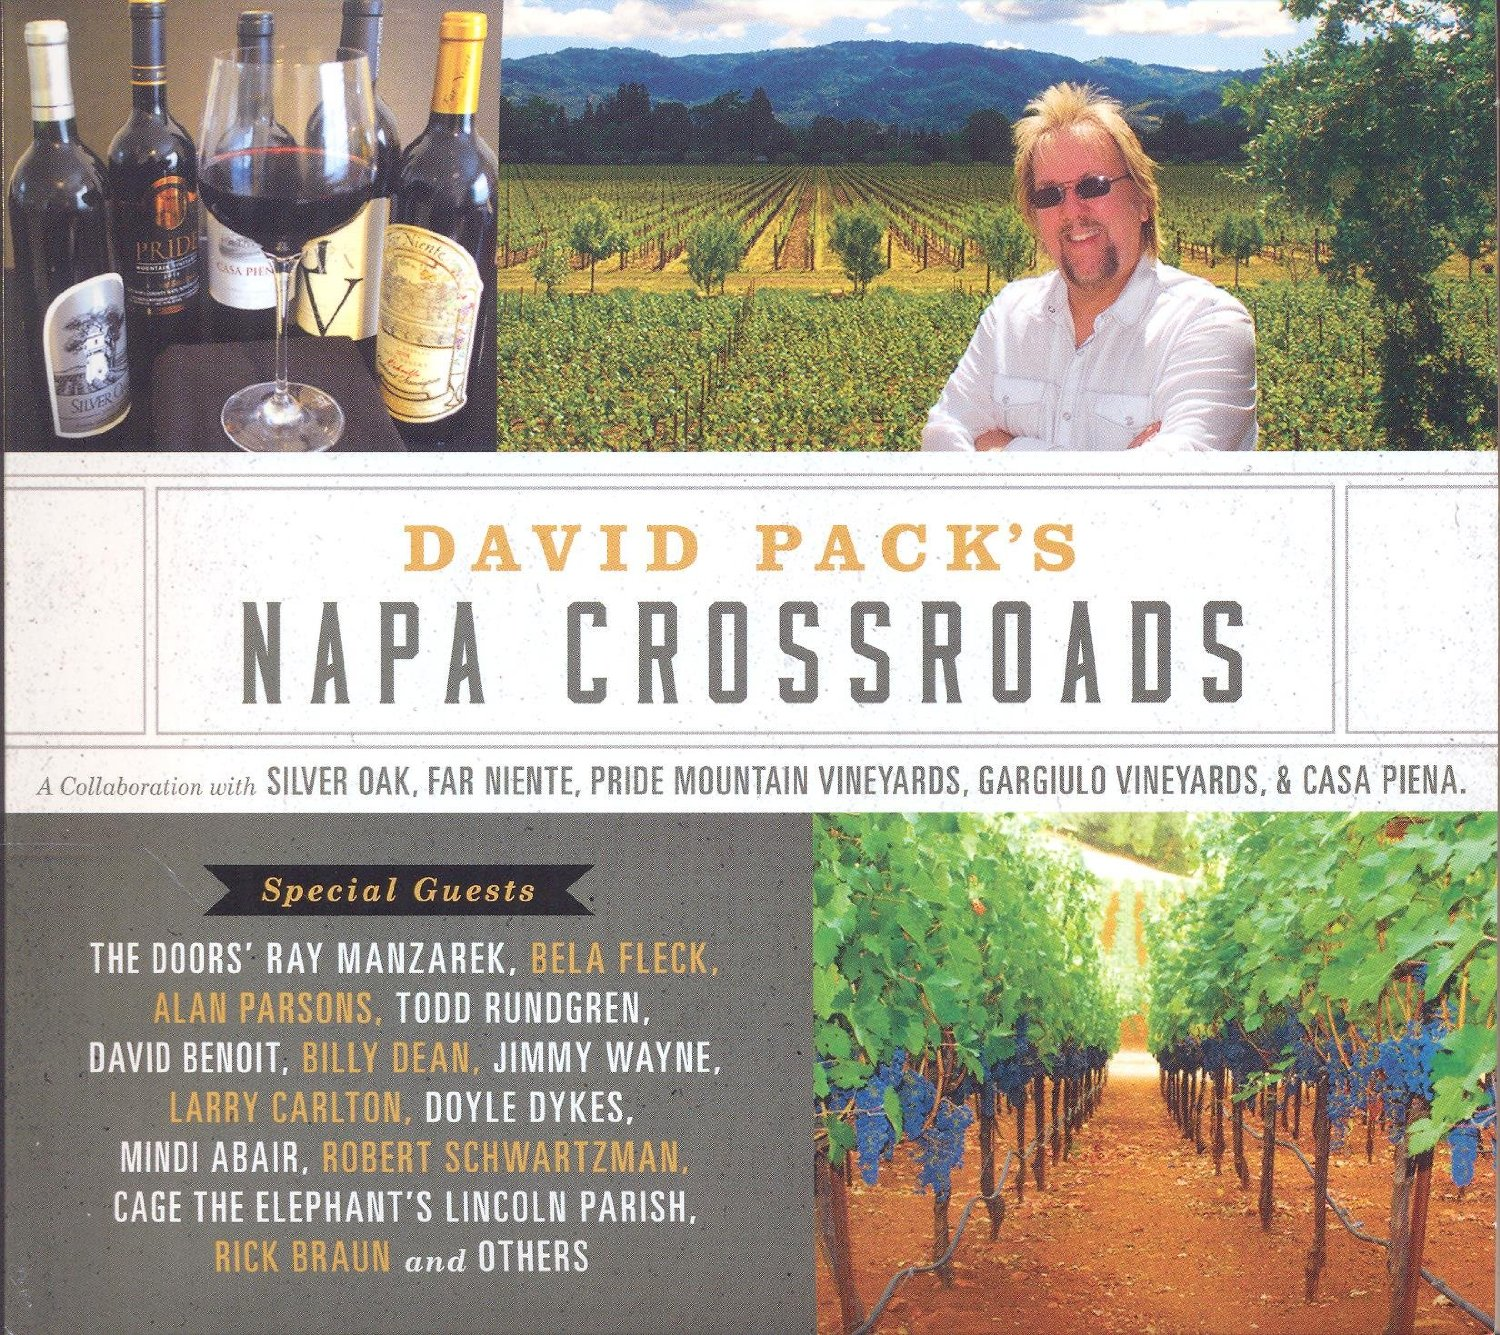 David Pack's Napa Crossroads.jpg